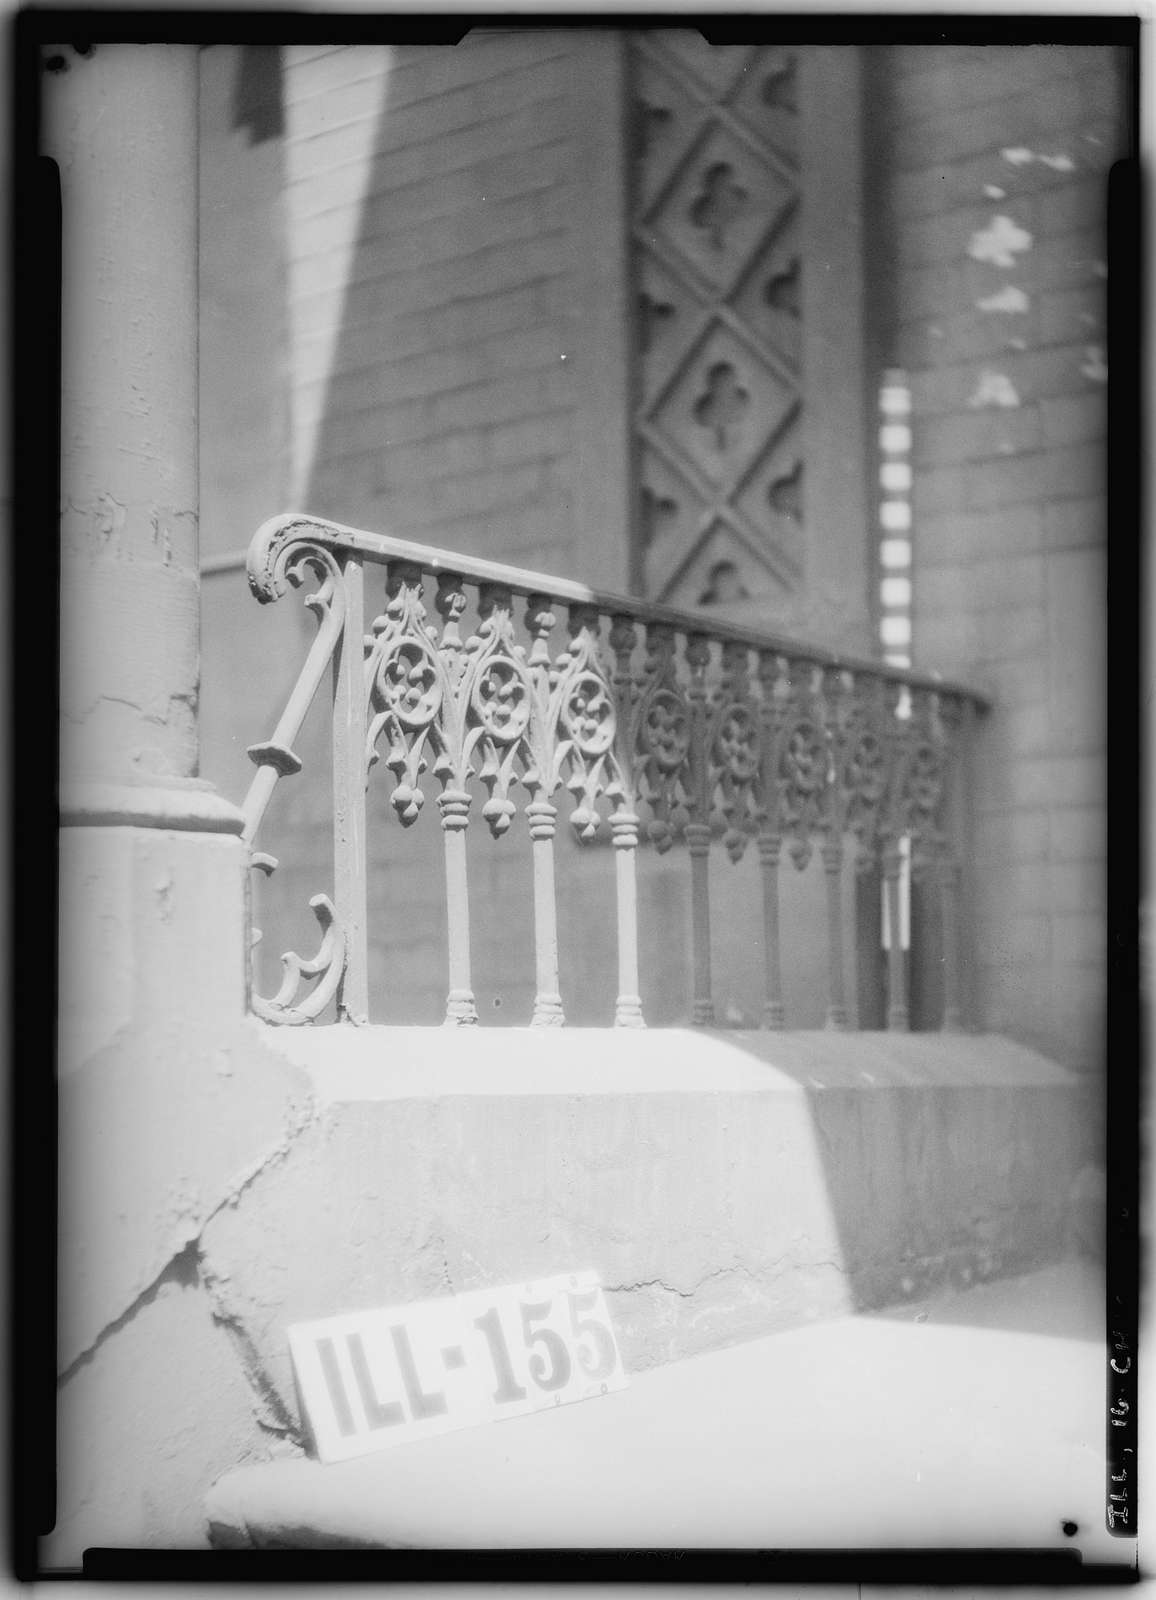 Chicago Ironwork, 1237 North Dearborn Street (Cast Iron Porch Railing & Fence), 1237 North Dearborn Street, Chicago, Cook County, IL